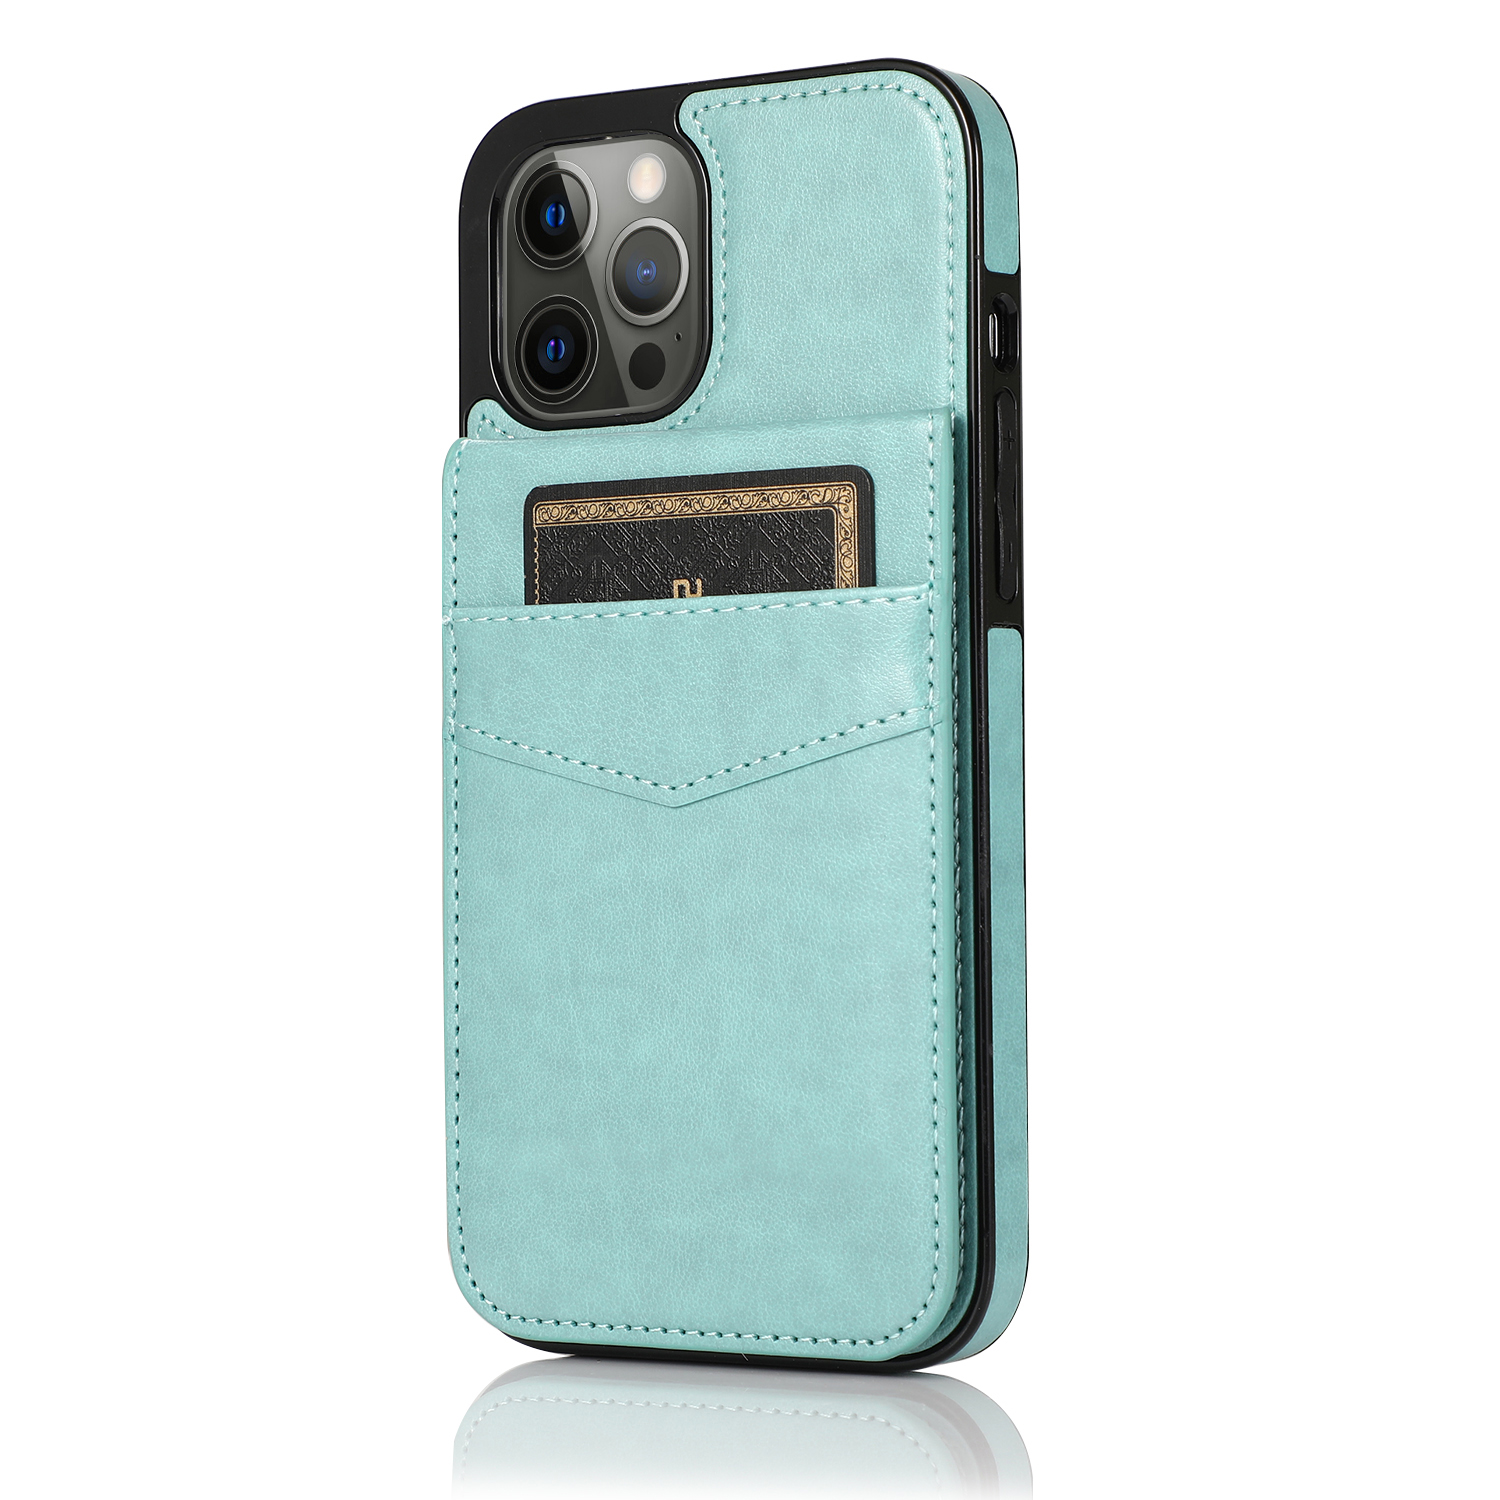 Mobile Phone Case Solid Color Plug-in Card Protective Case Cover For Iphone12 Mint Green_iphone 12promax 6.7